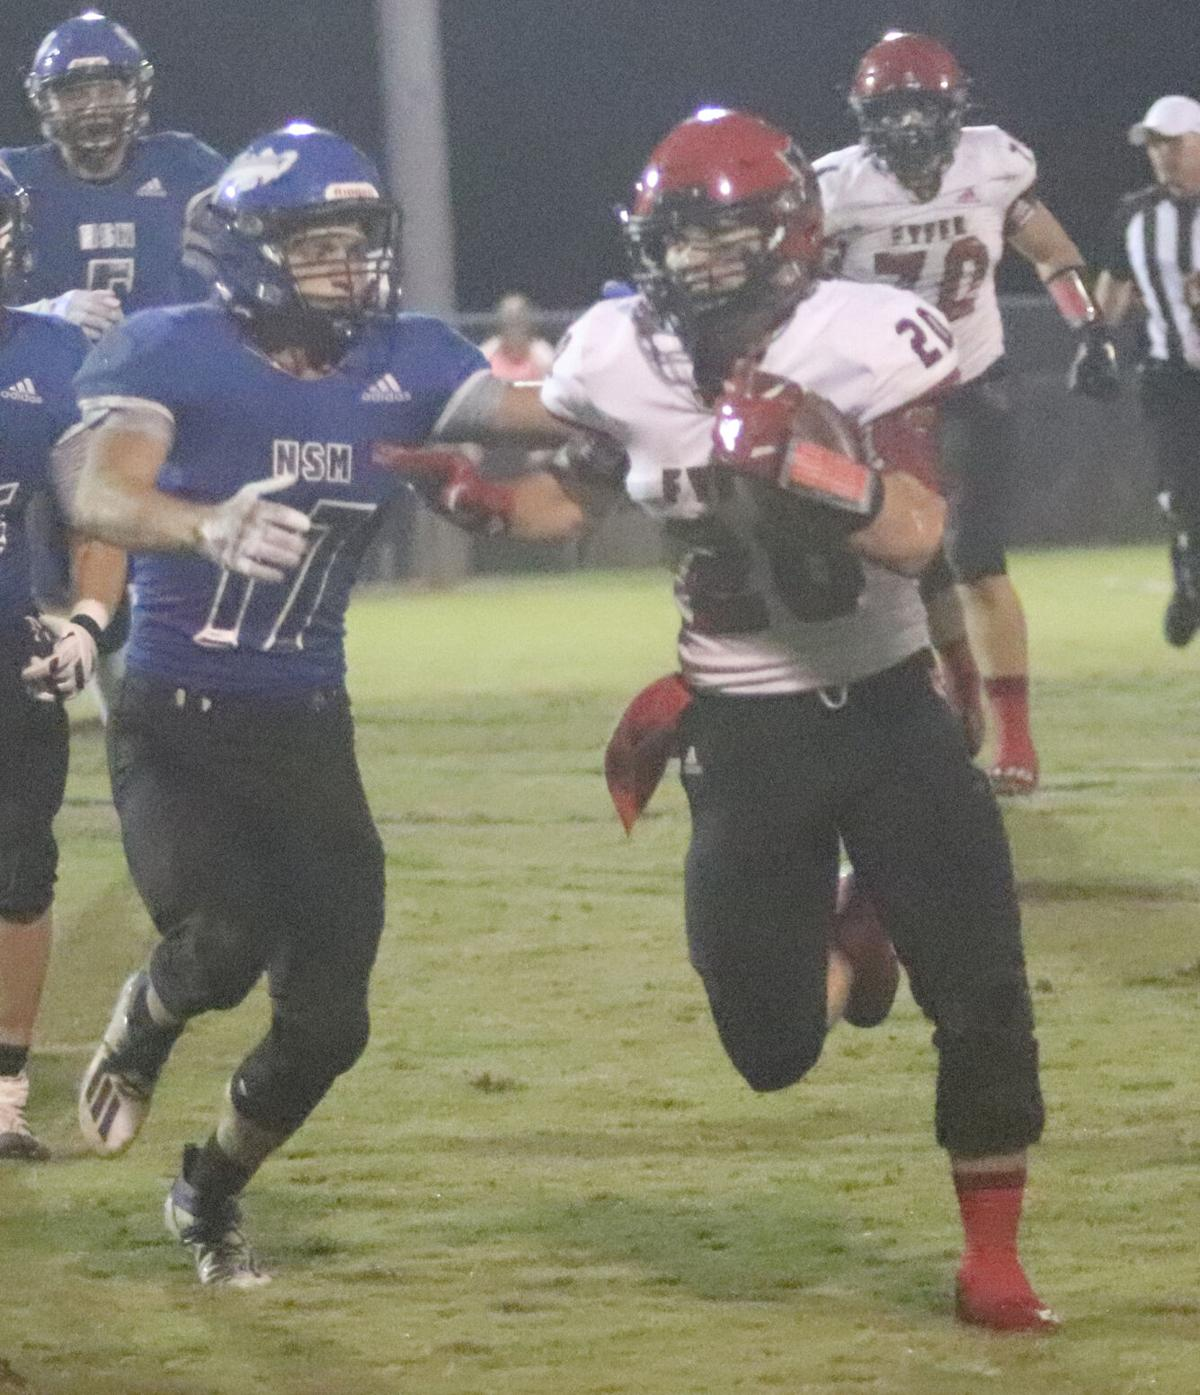 DeKalb County Preview: Undefeated Fyffe eyes region title, visiting Geraldine